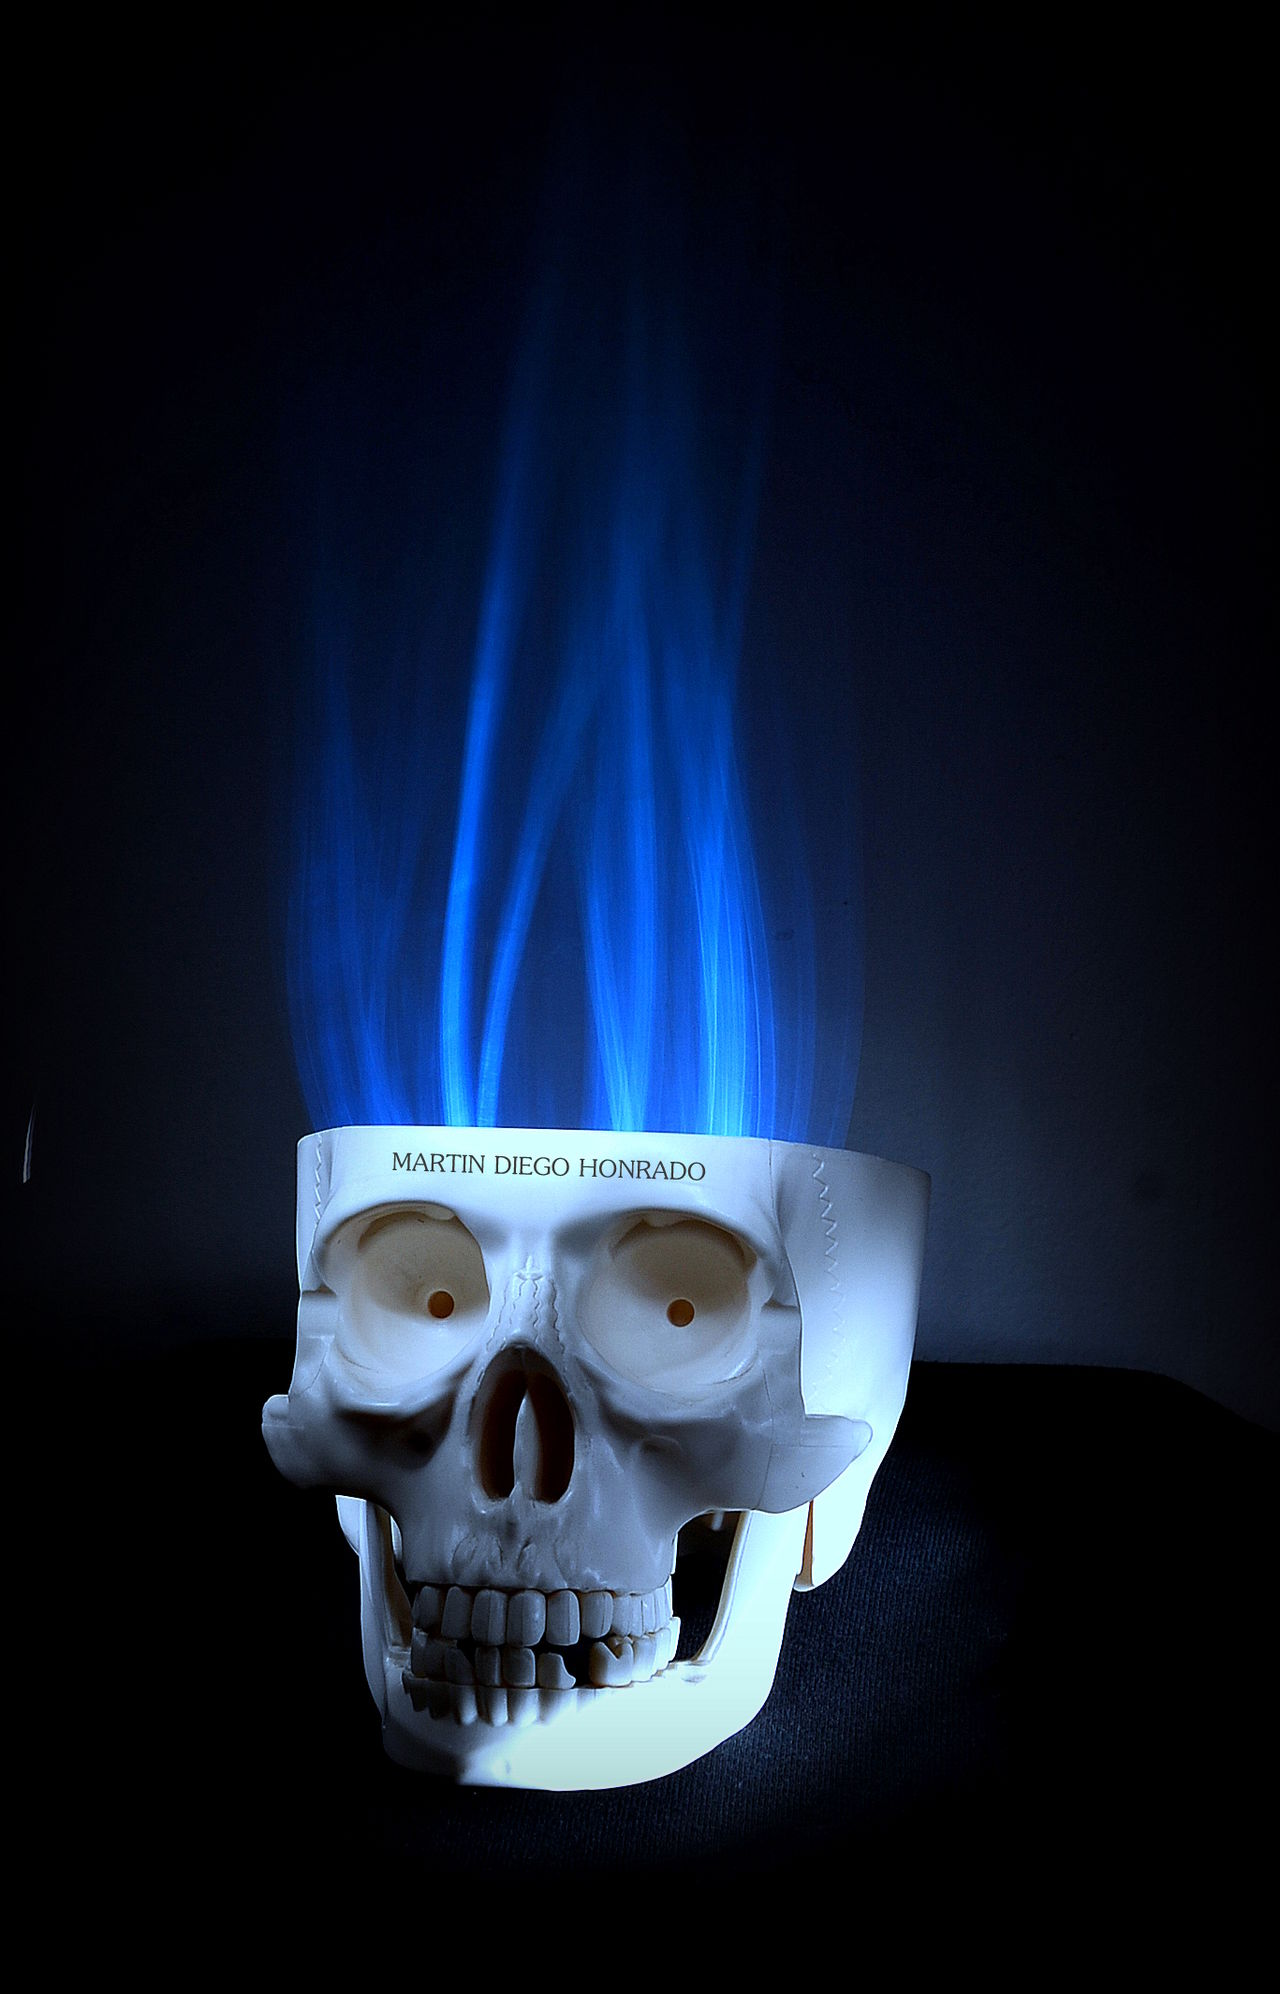 Skull Skull Art Flame Blue Flame Blue Flames Calavera  Lightpainting Lightpaintingphotography Jugando Con La Luz Lightpainting Photography Exposure Aperture Shutterspeed